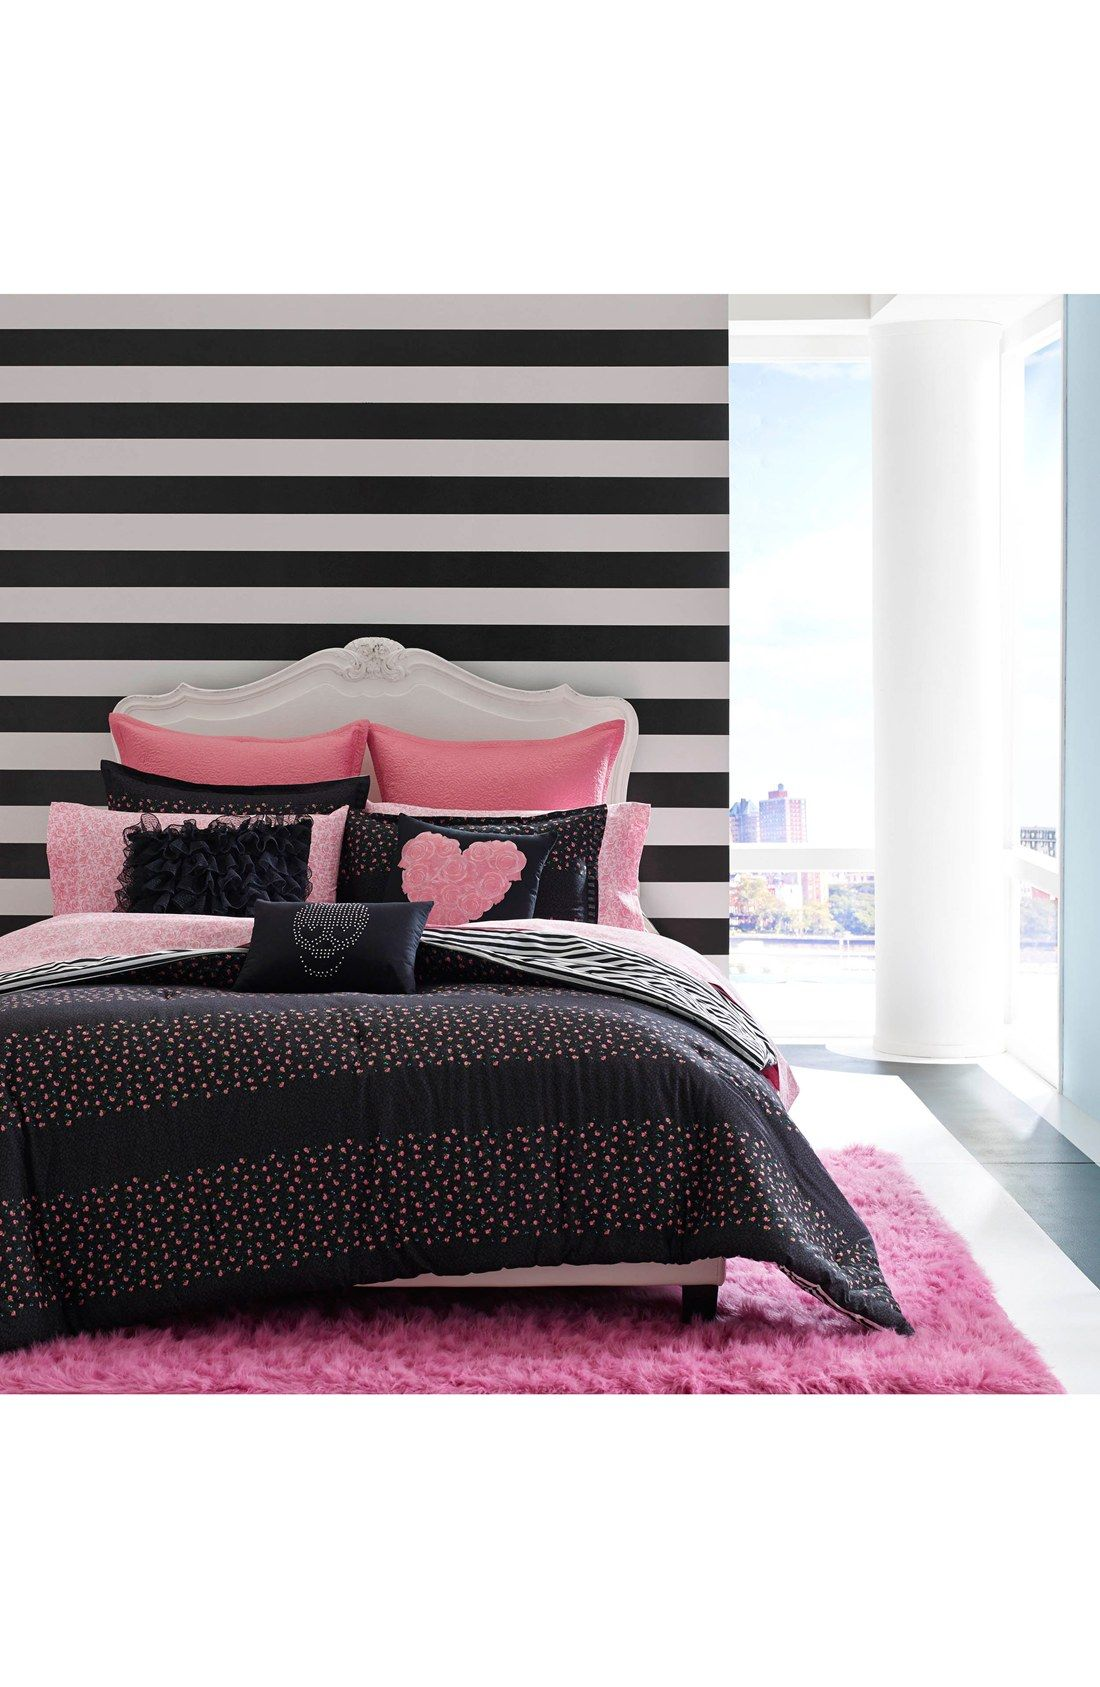 Betsey Johnson Bedding Punk Princess Comforter Set Betsey Johnson Bedding Princess Comforter Wall Decor Bedroom